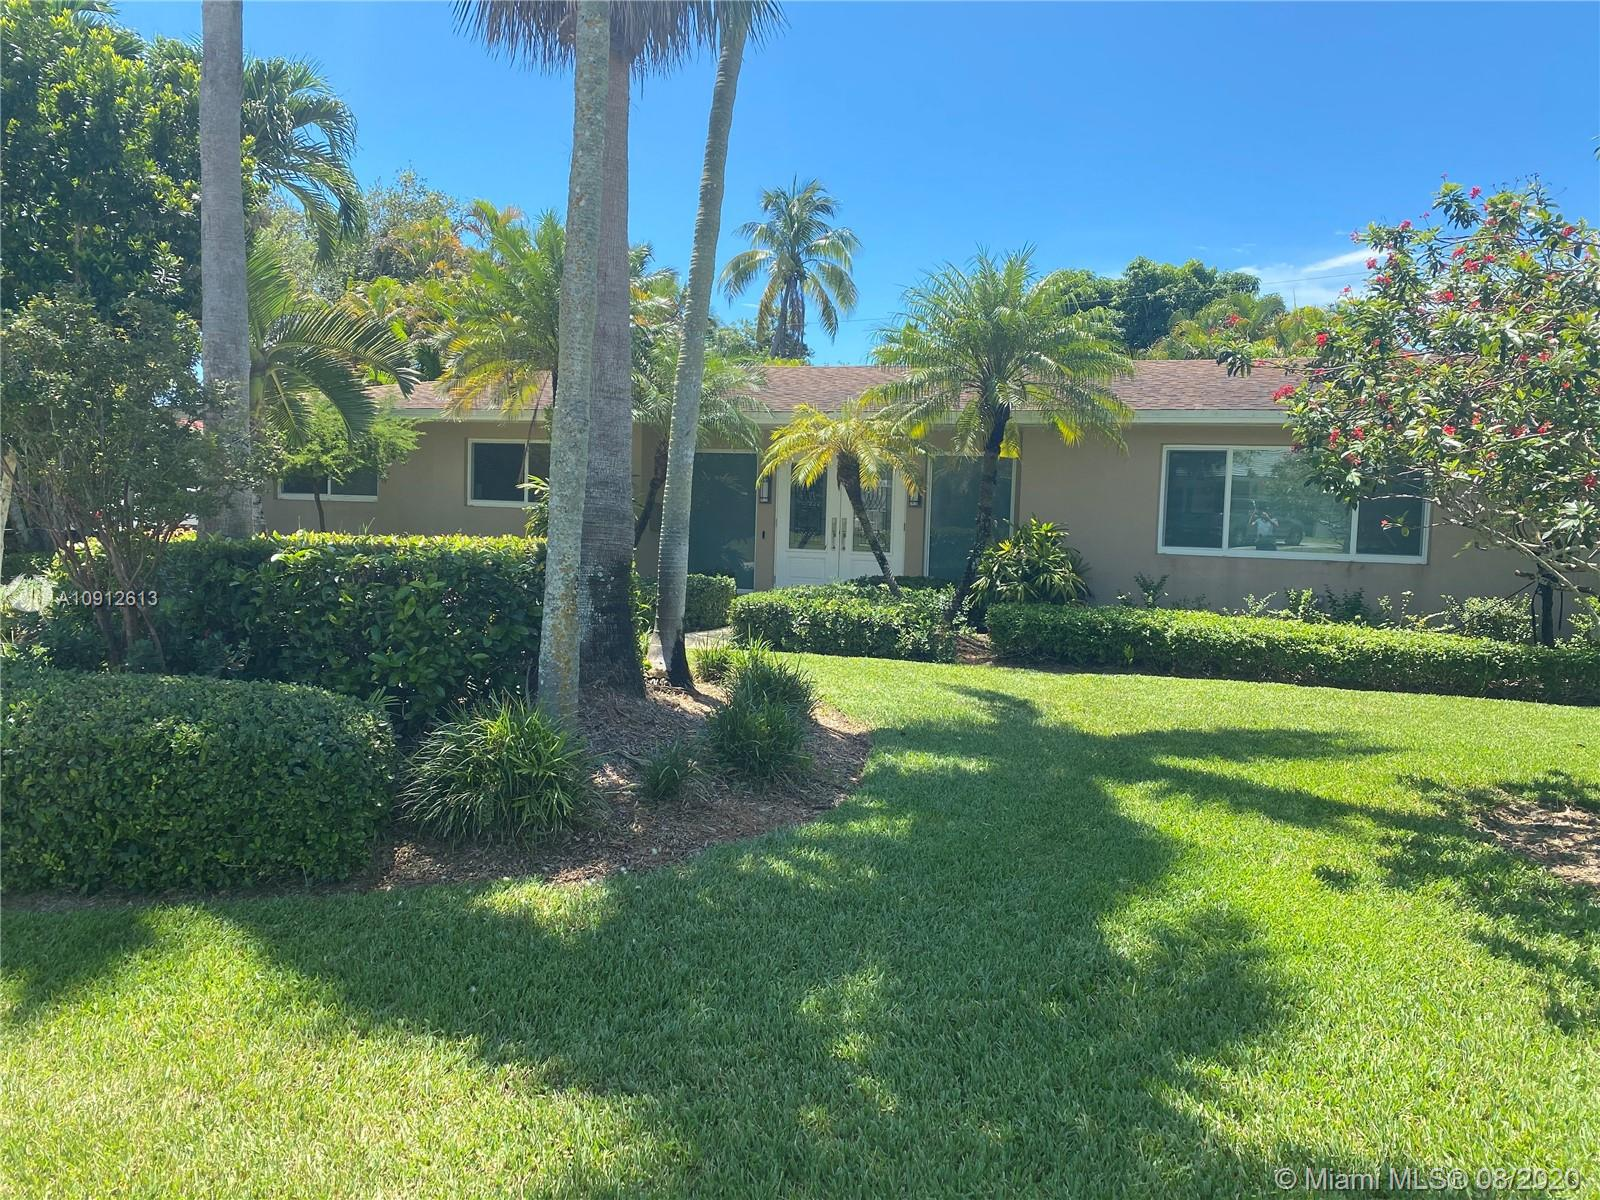 Fantastic Palmetto Bay pool home.  Recently, completely renovated with high end finishes through out. Top of the line kitchen appliances with wood cabinets including all the extras.  Master bedroom with large sitting room overlooks the pool.  Both bathrooms with access to the pool/patio area.  Large living room with custom rock wall. Impact doors and windows. No expense spared.  Quiet no traffic location.